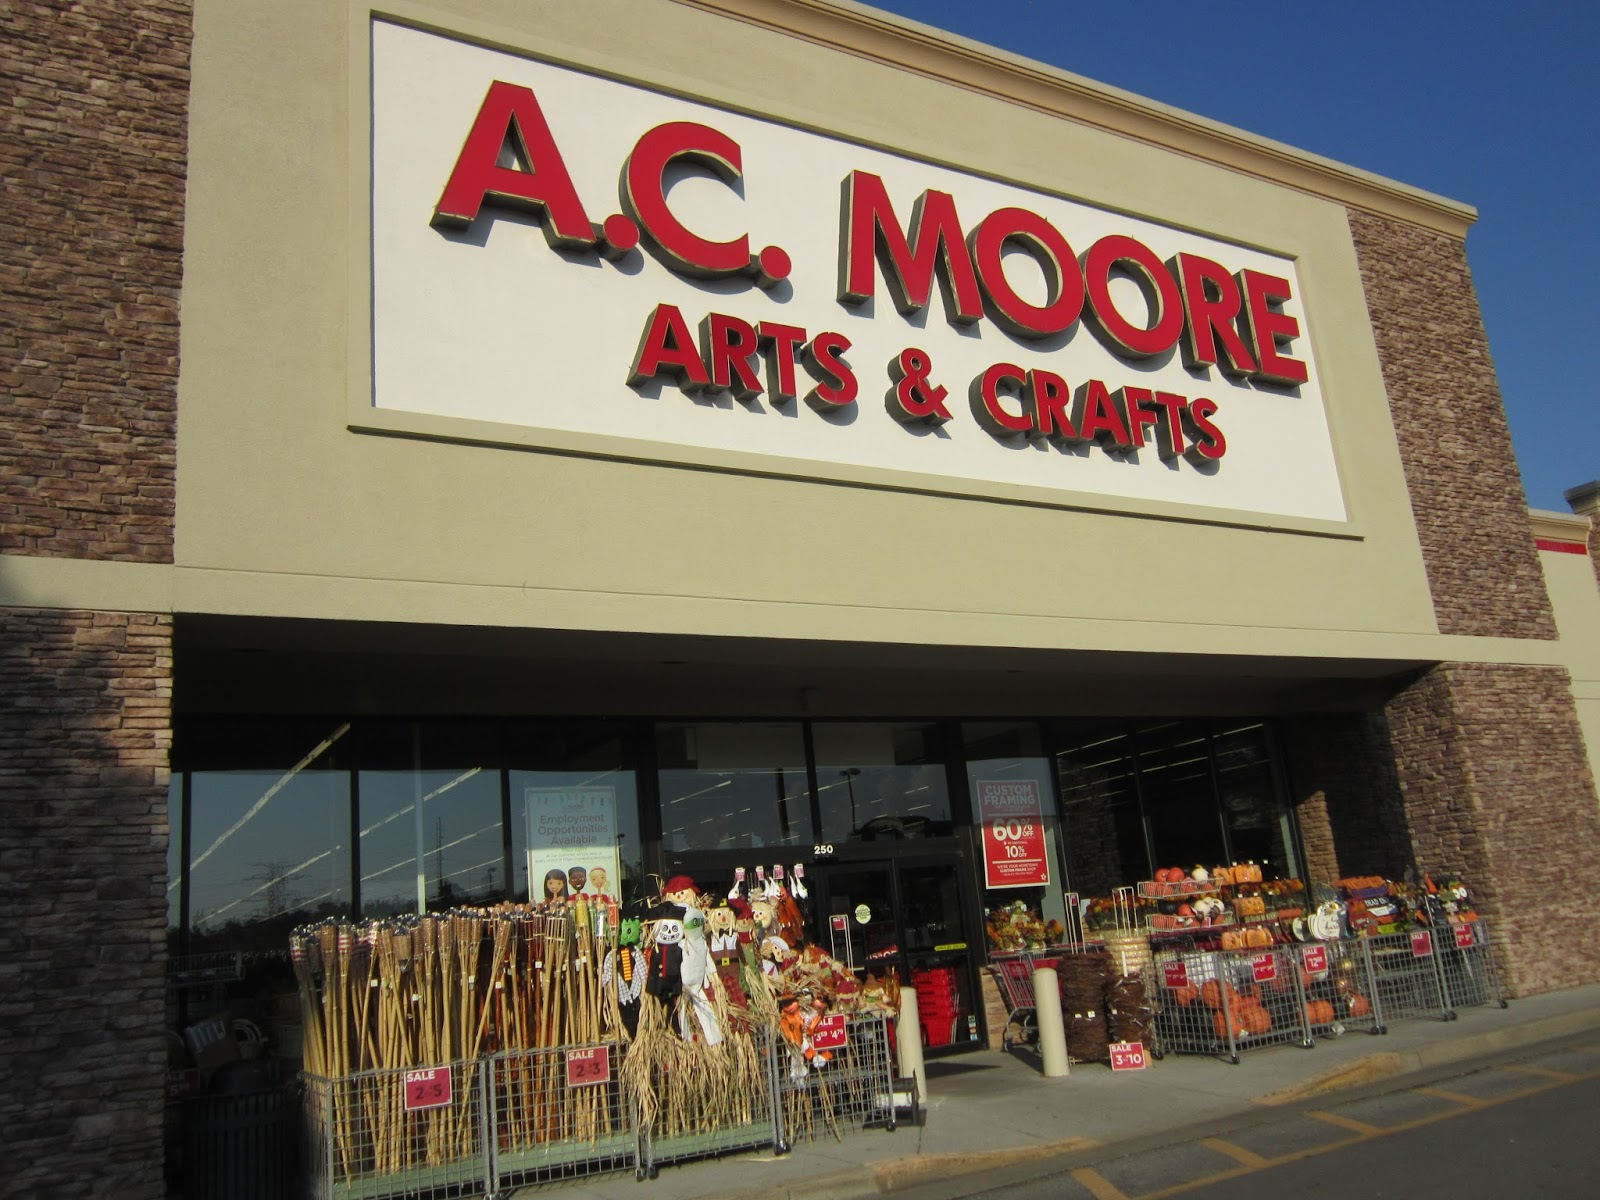 A c moore crafts a perfect partnership retail leader for Ac moore and crafts